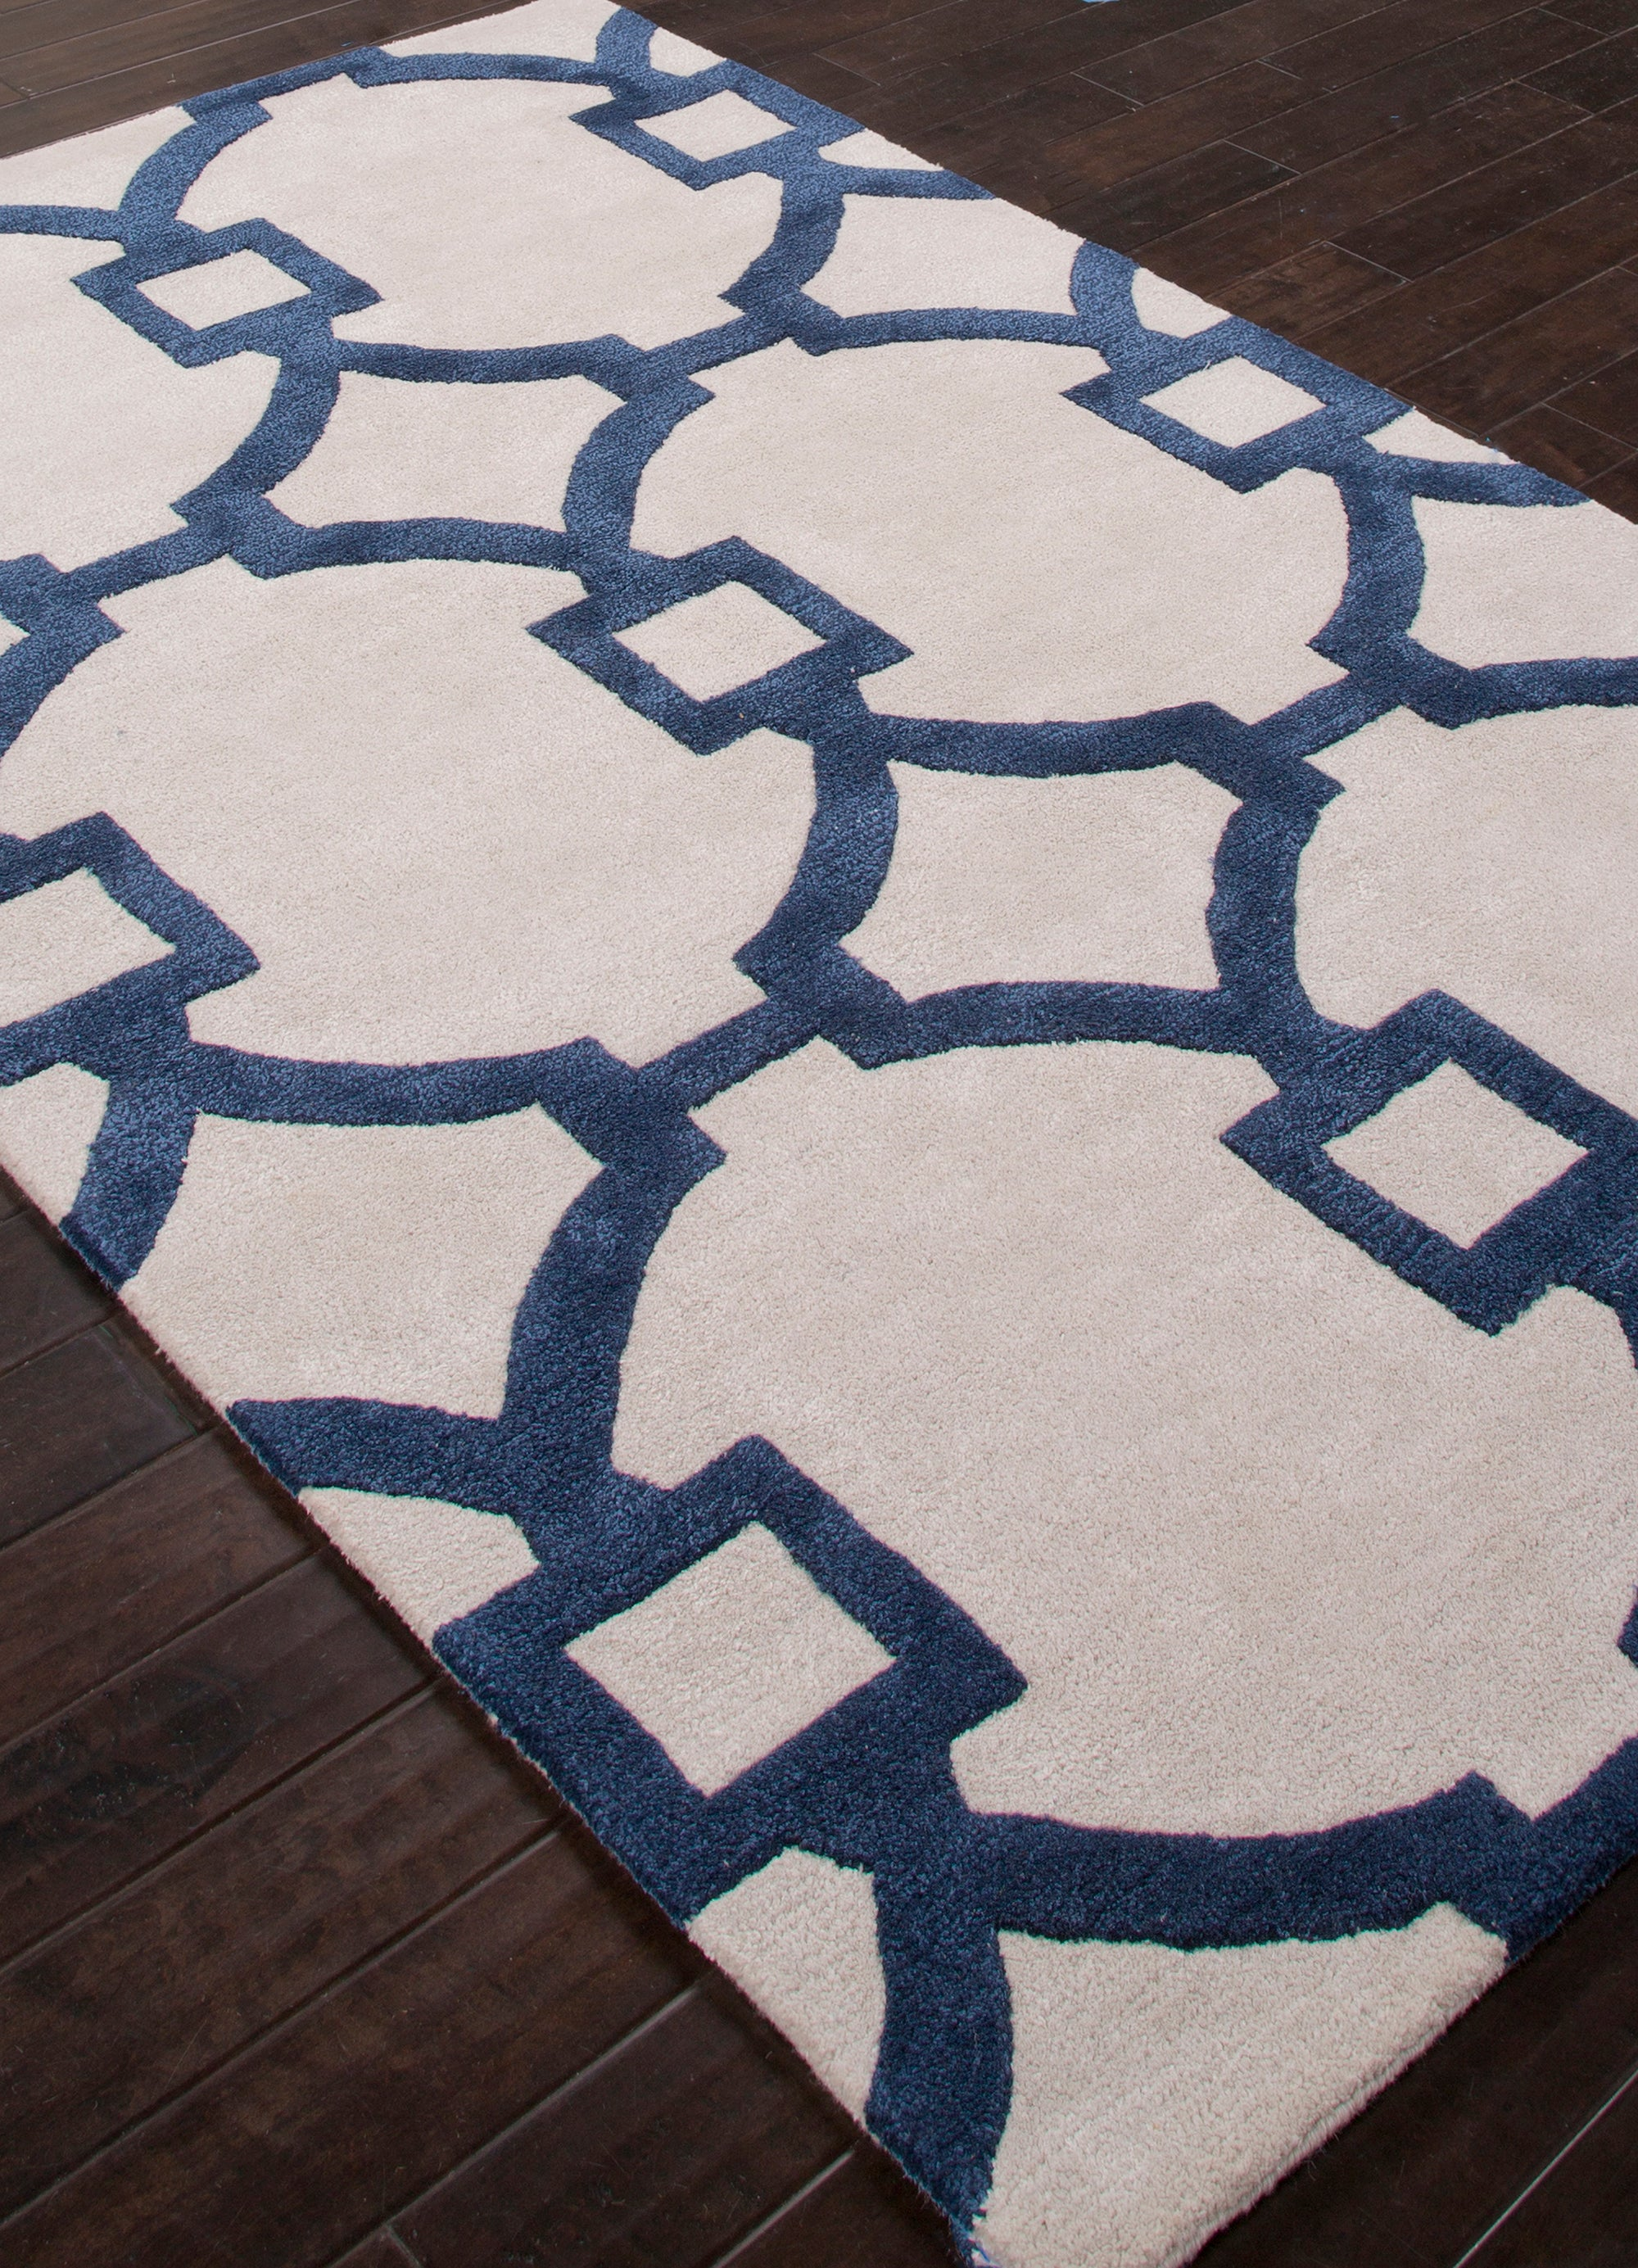 Jaipur Living City CT57 White Trellis/Chain/Tiles Area Rug